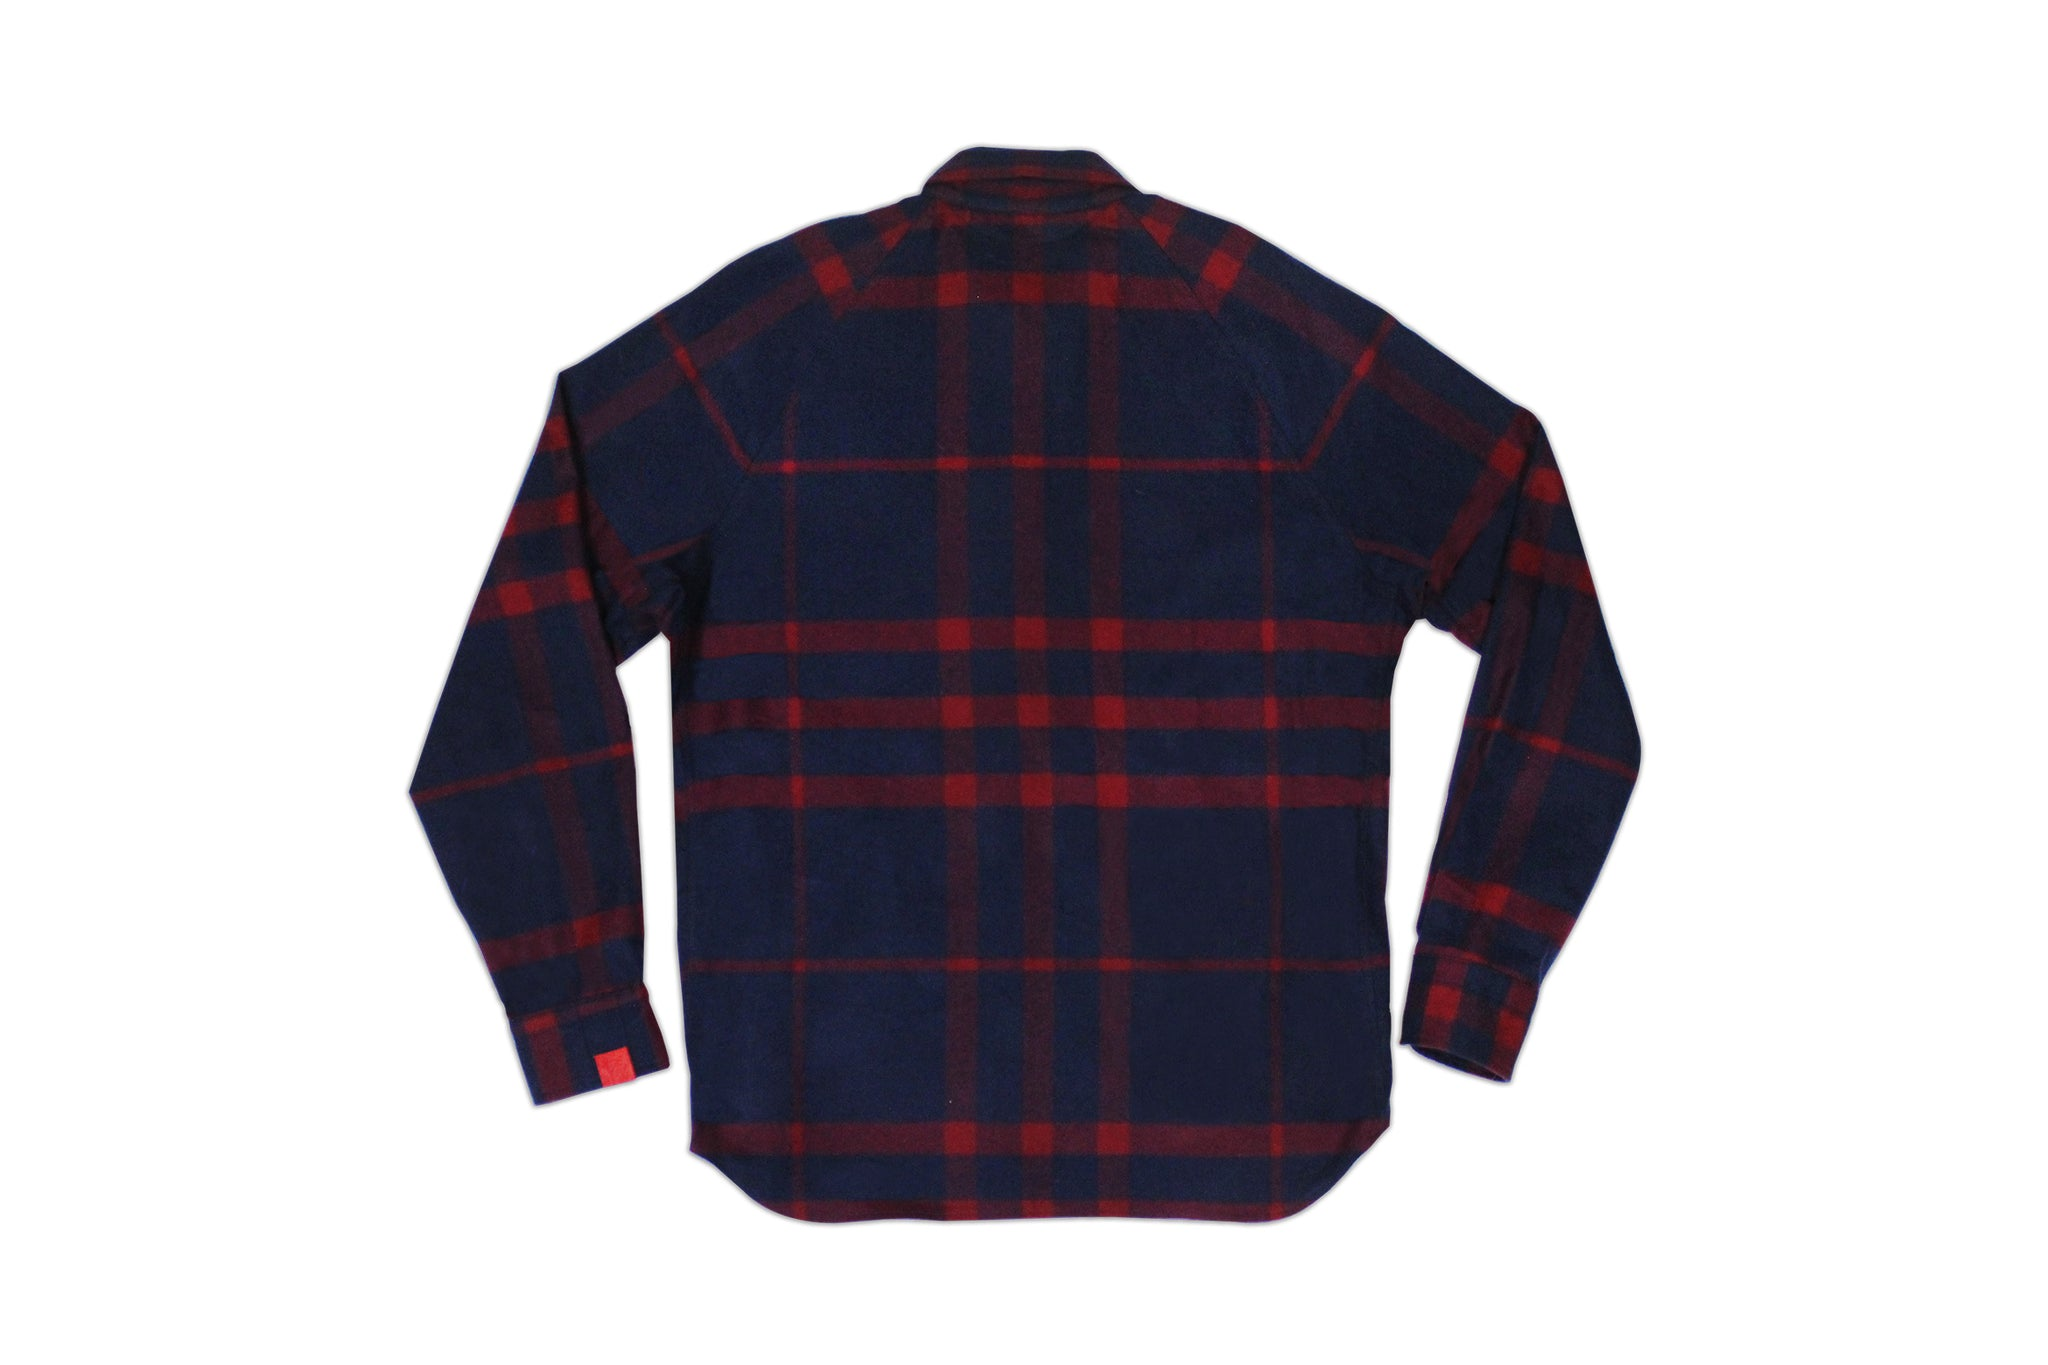 Warren Peace - Knox Plaid Button Down Back - Designer Streetwear